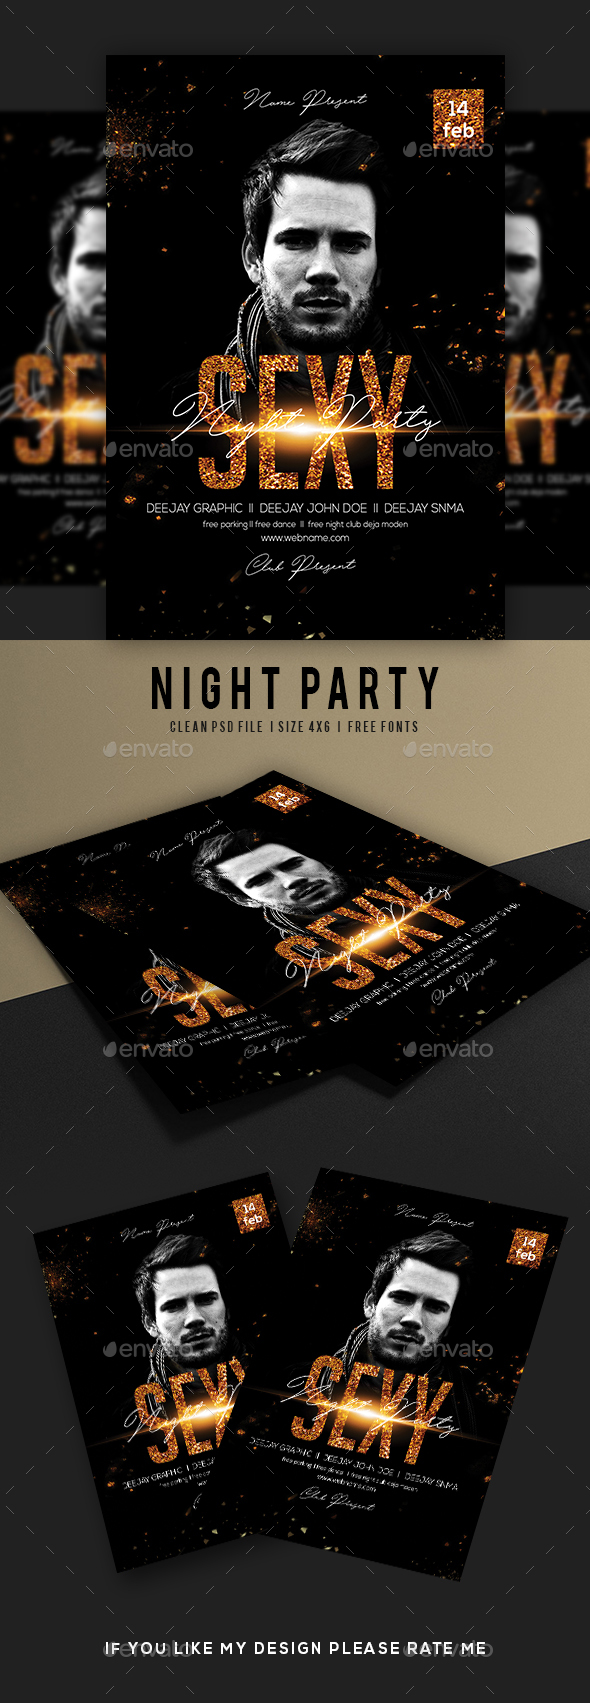 Sexy Night Party Flyer - Events Flyers